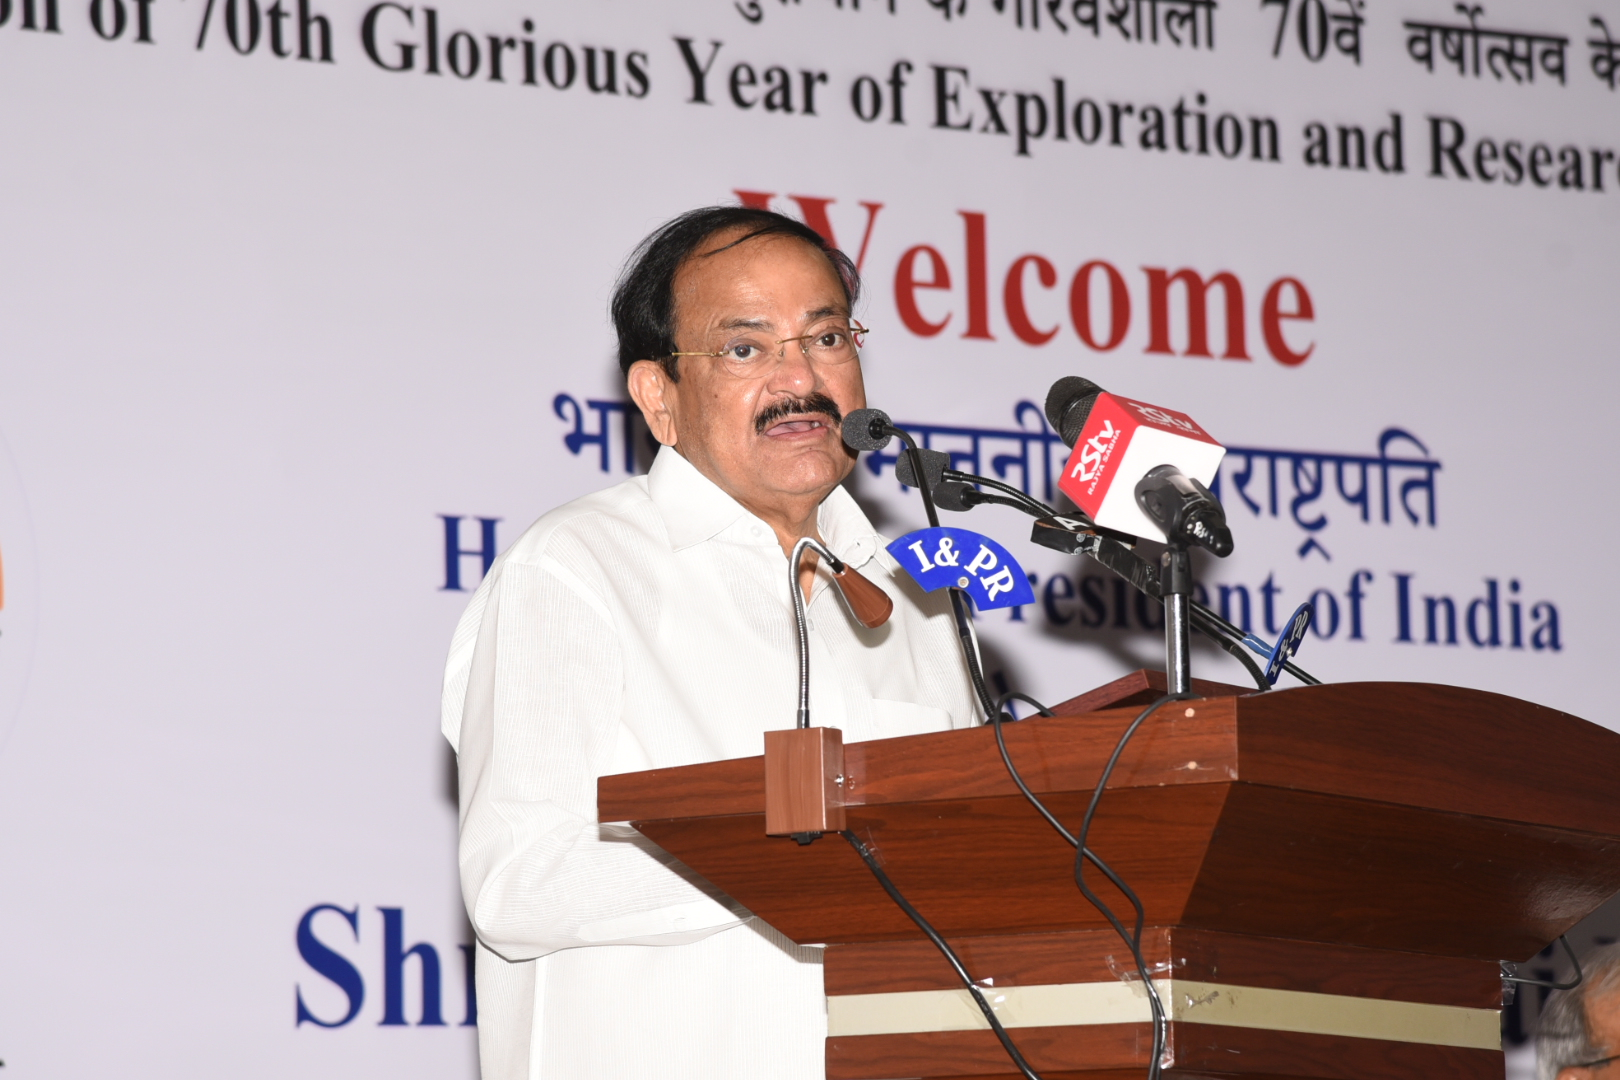 The Vice President, Shri M. Venkaiah Naidu addressing the gathering at an event to commemorate 70th Year of Exploration and Research of Atomic Minerals, at the Atomic Minerals Directorate for Exploration and Research, in Hyderabad on May 16, 2019.